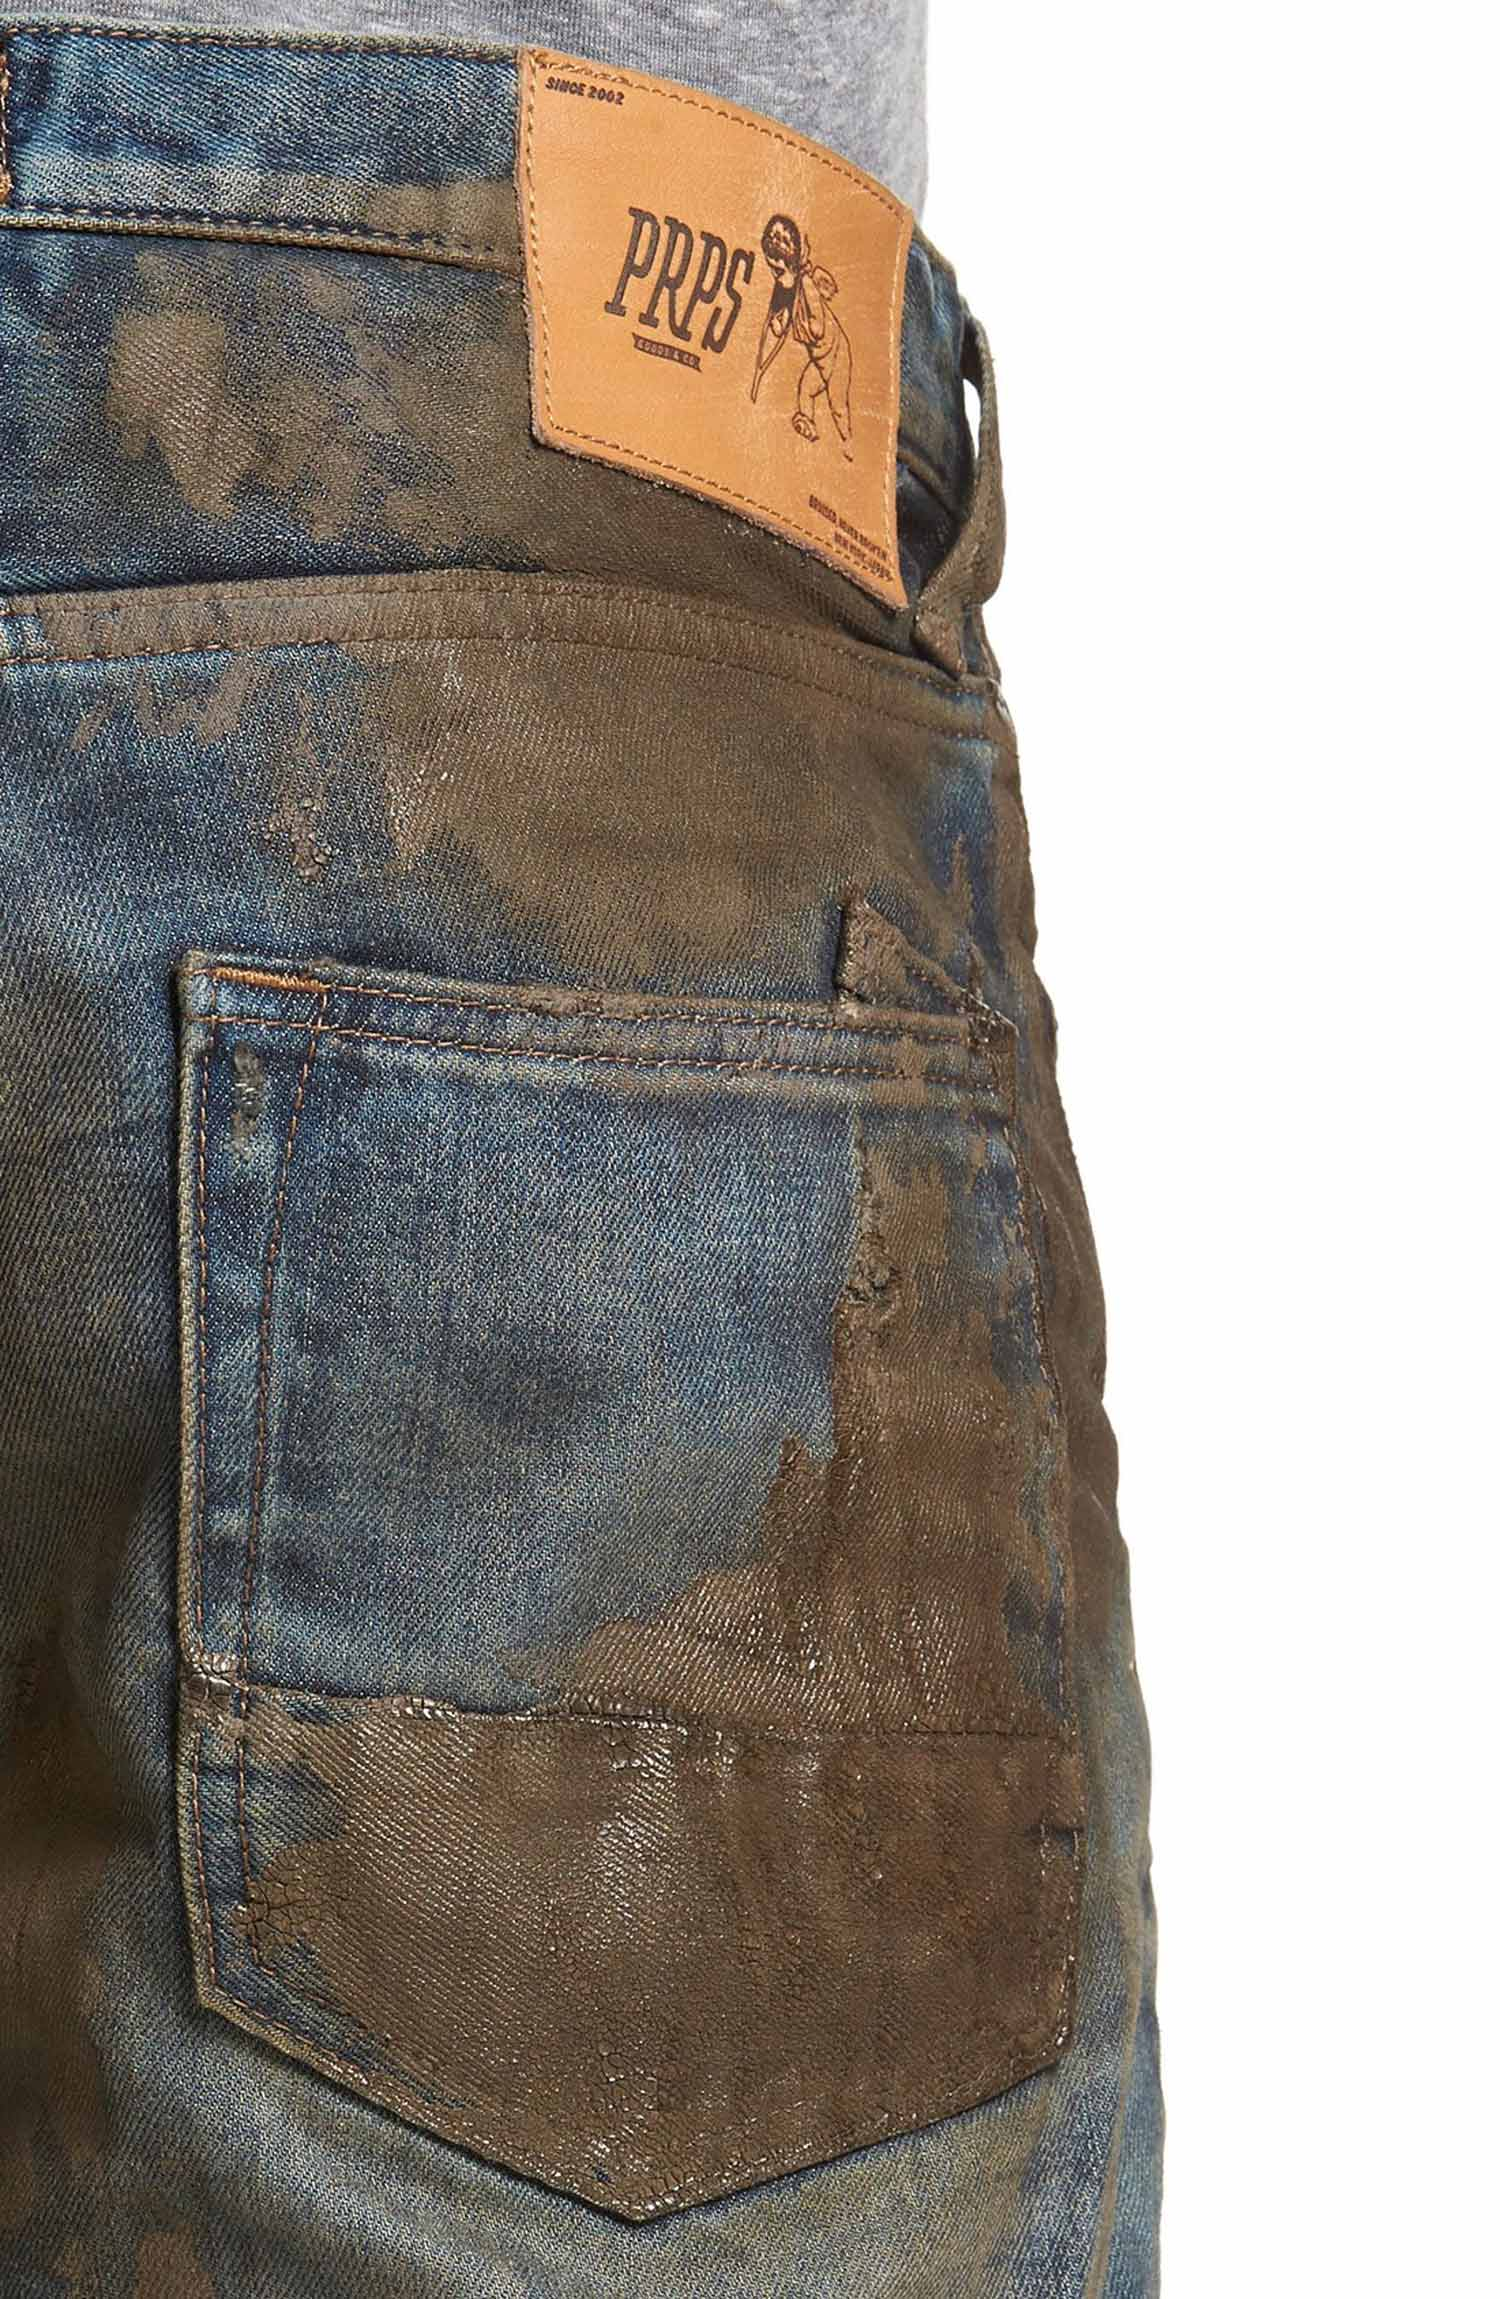 Get down and dirty' in Nordstrom's mud-caked jeans at 'only' $425